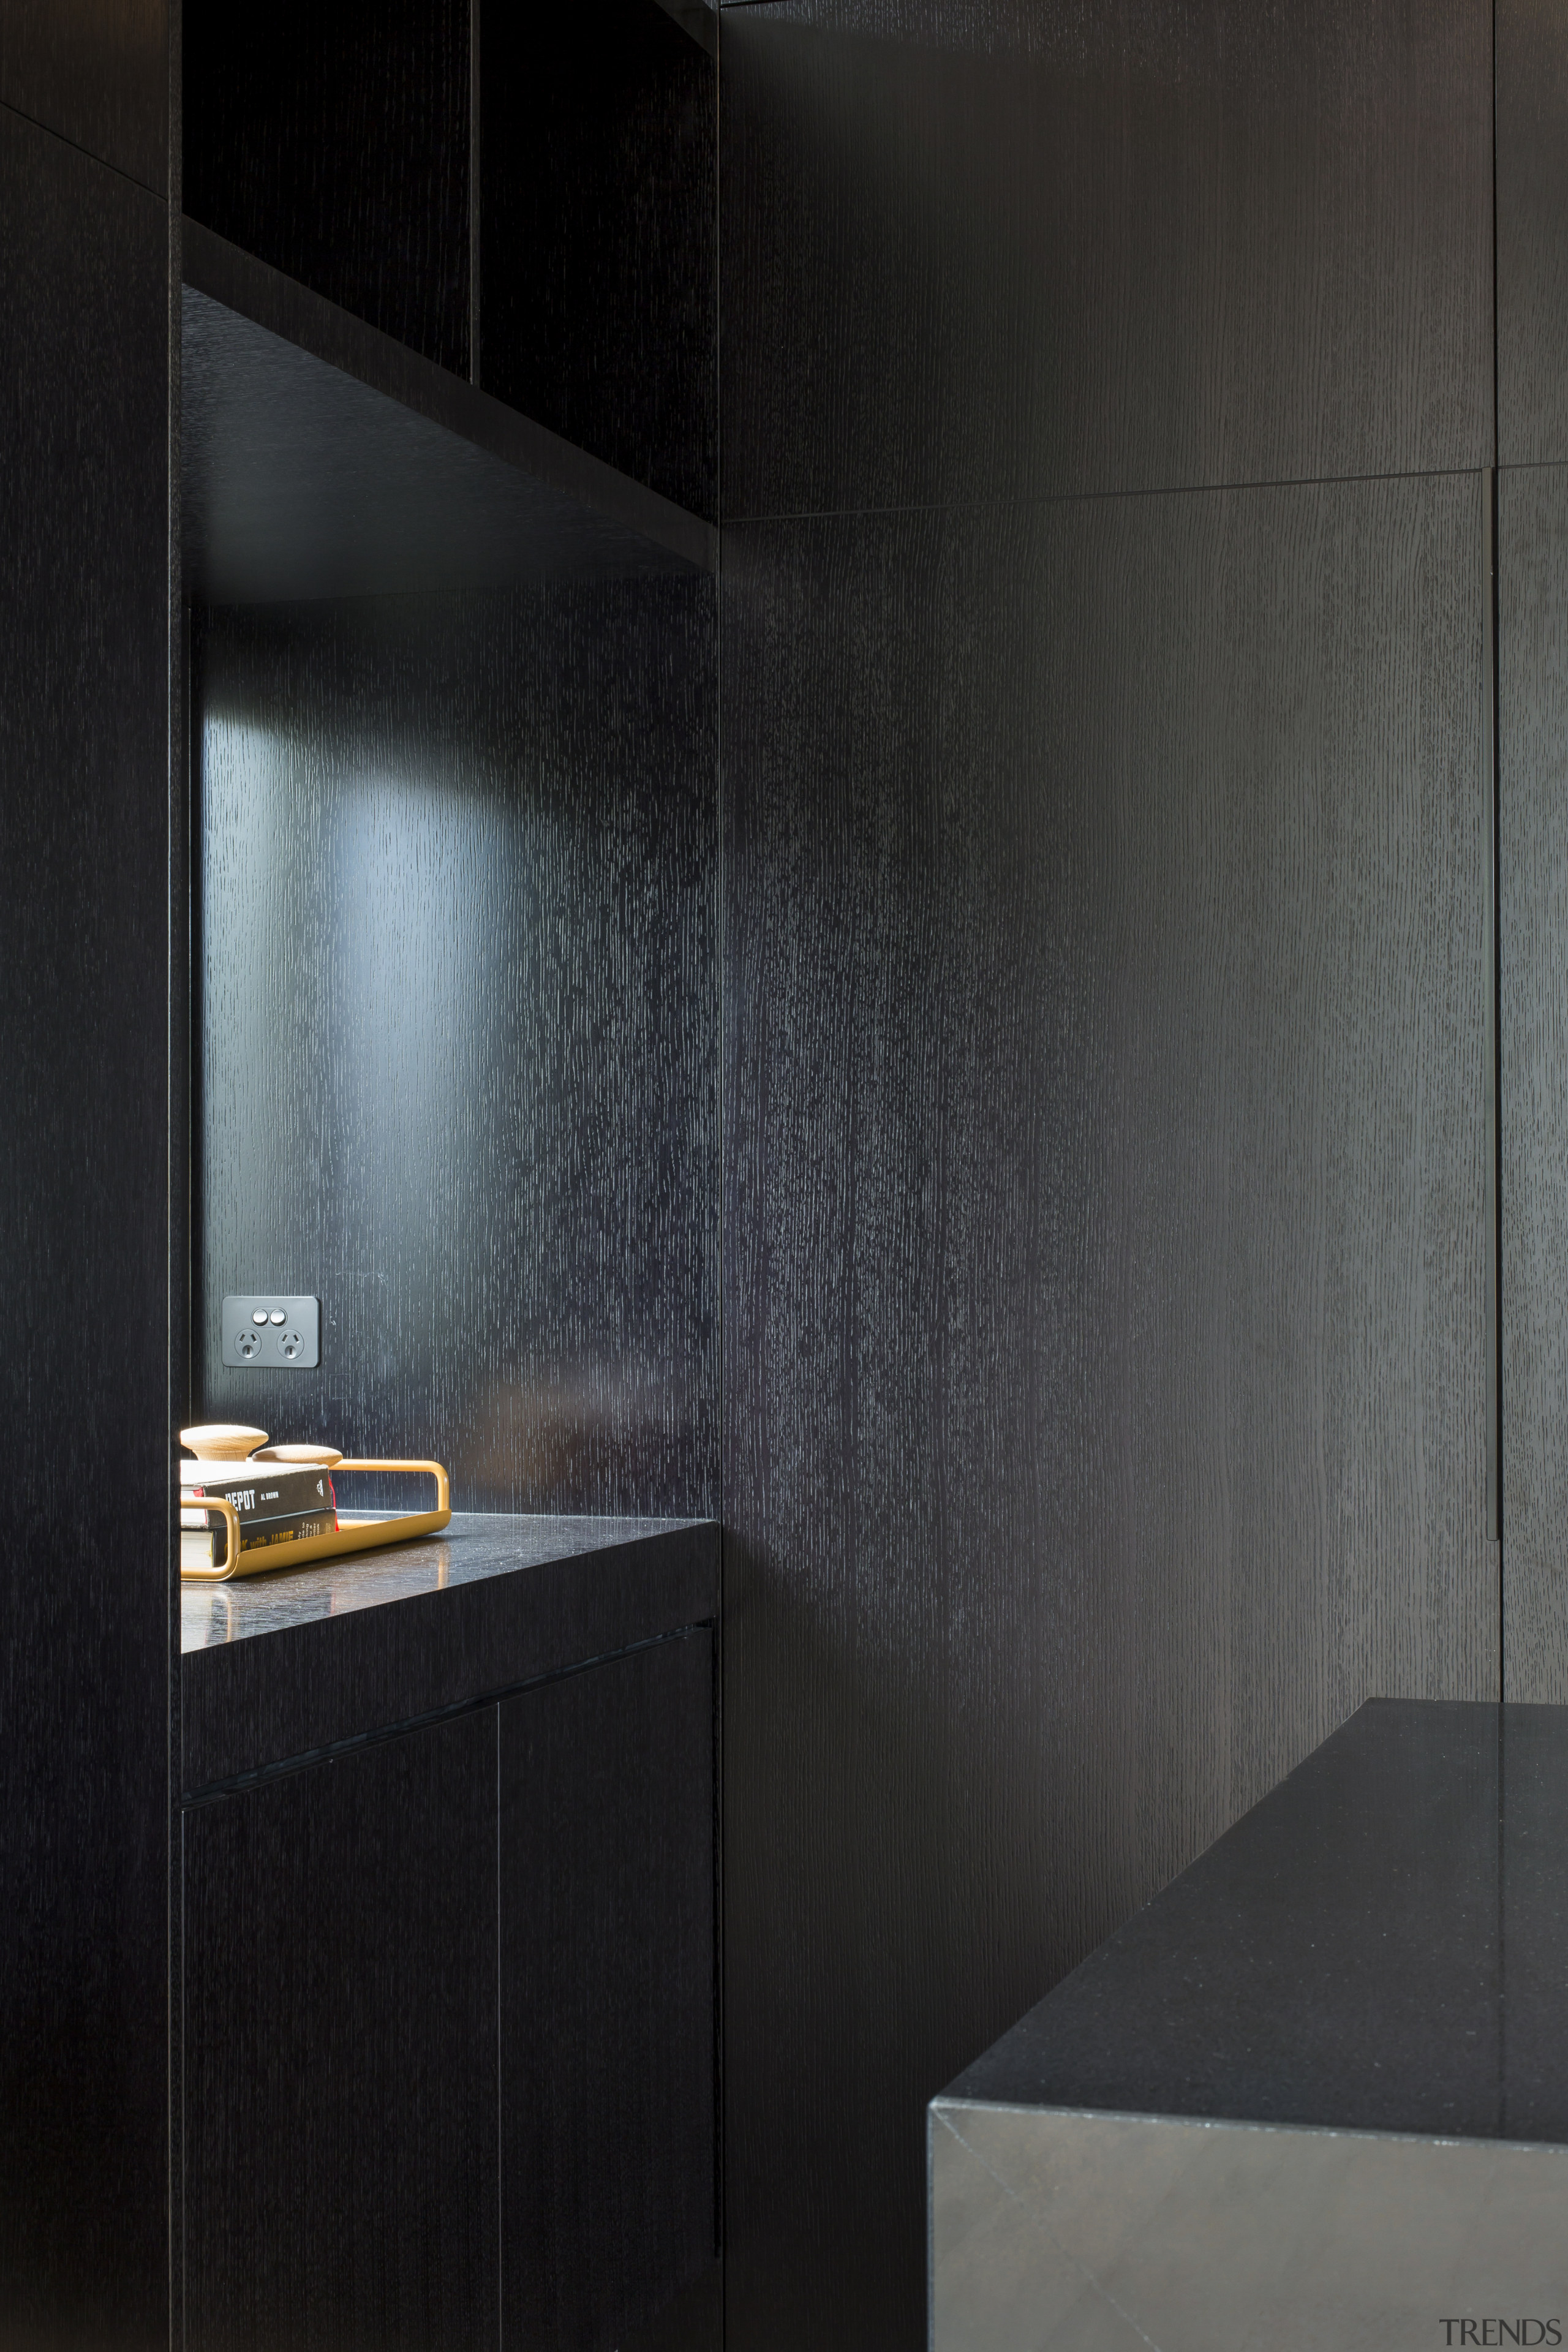 For this kitchen by Borrmeister Architects, a small architecture, floor, flooring, furniture, glass, interior design, material property, room, space, tile, wall, black